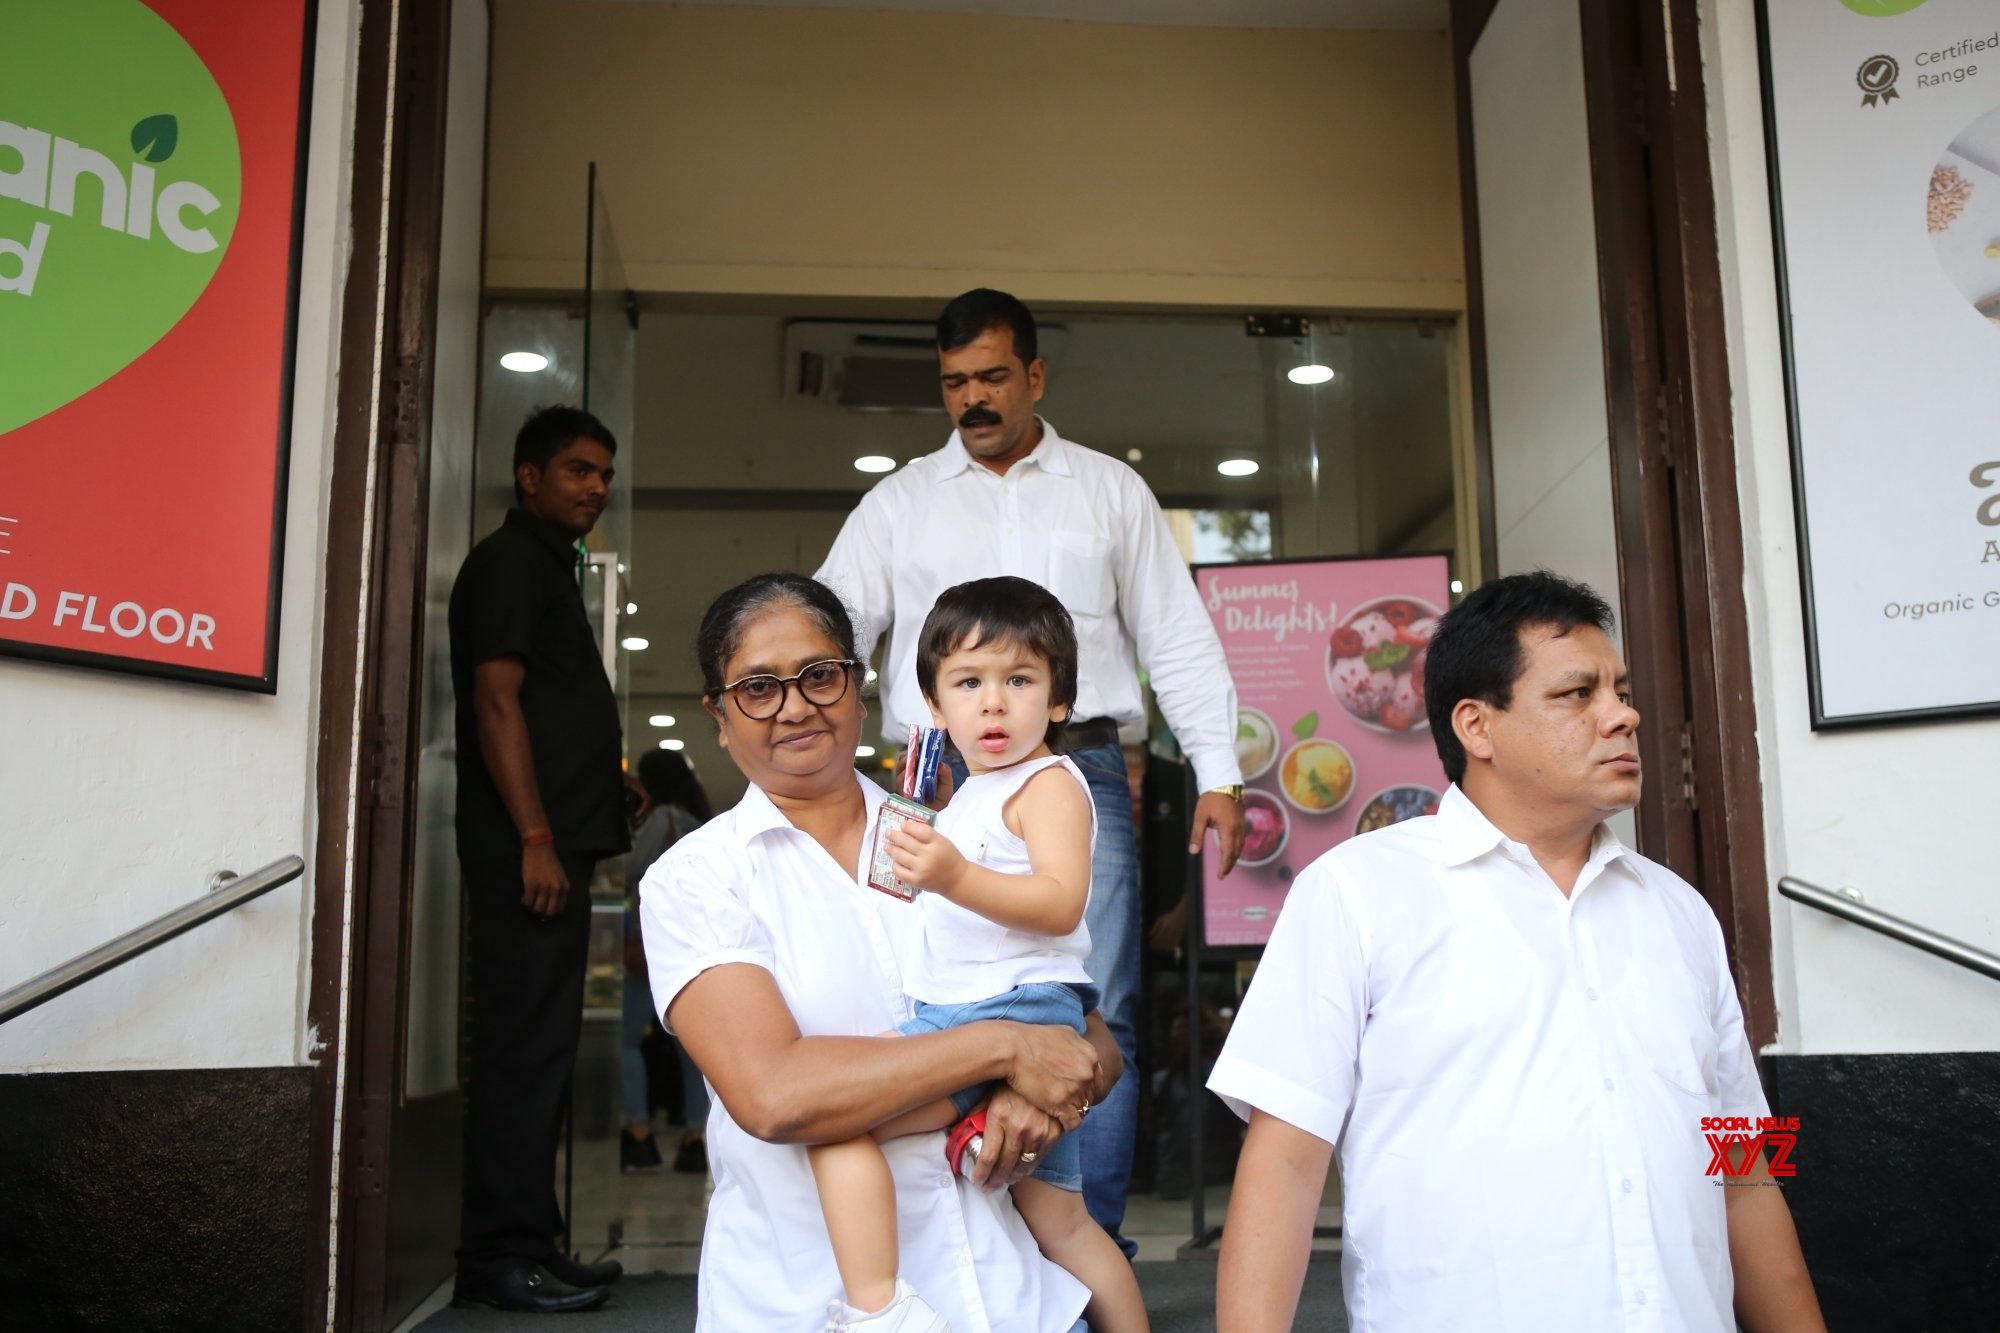 Mumbai: Taimur Ali Khan seen at Bandra #Gallery